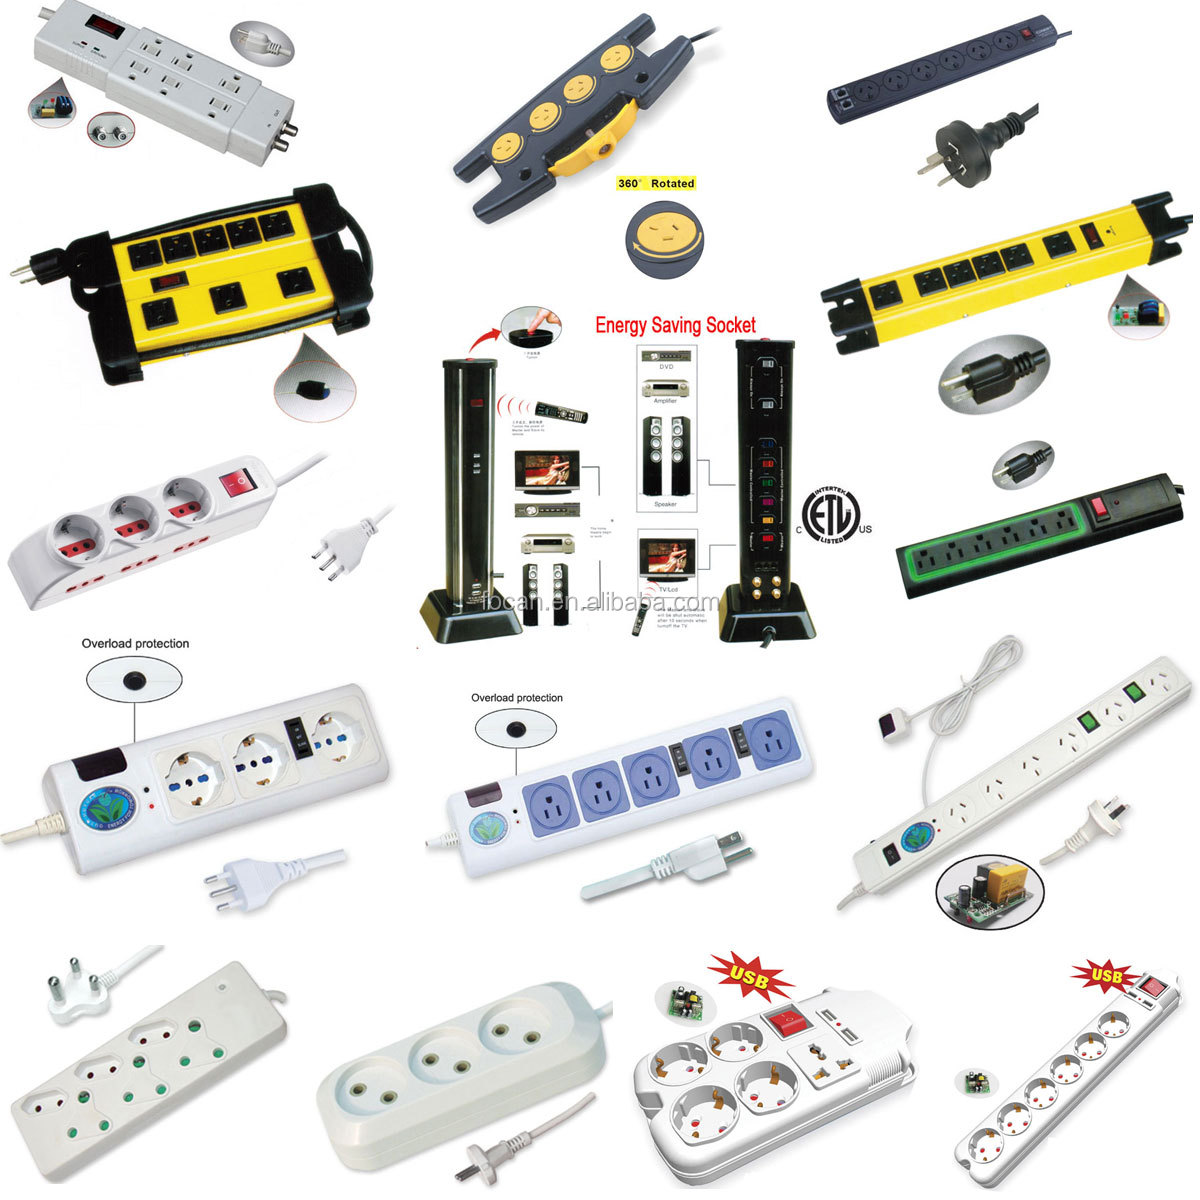 Korea POWER strip / Korea power board